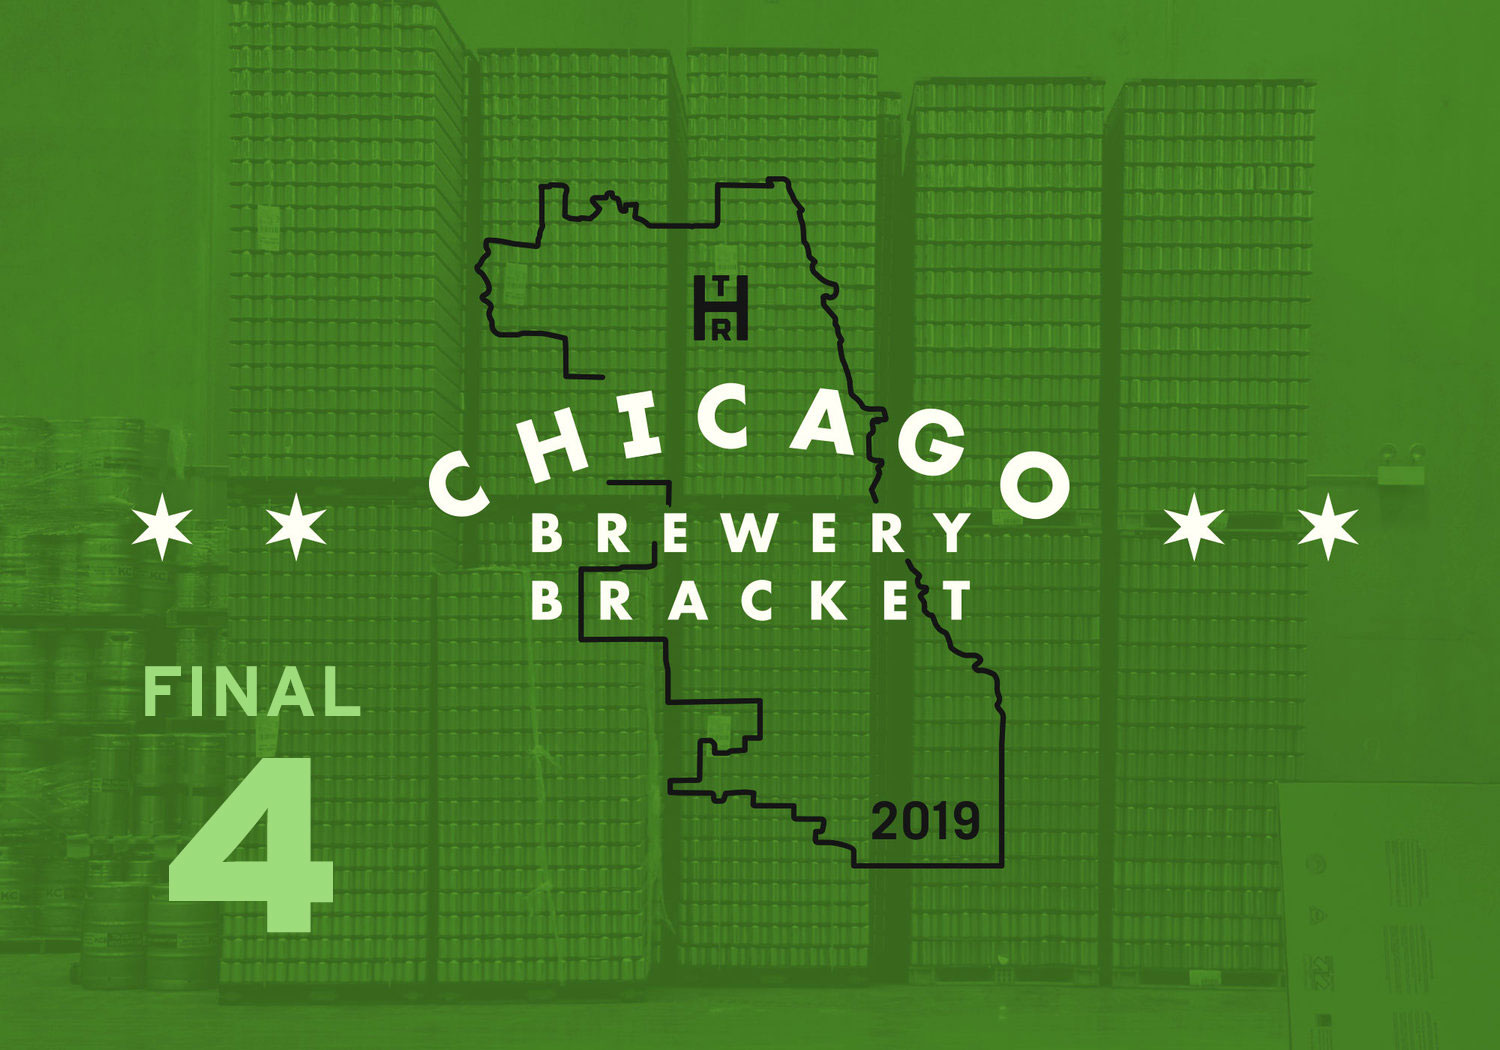 ChicagoBreweryBracket_2019-4.jpg